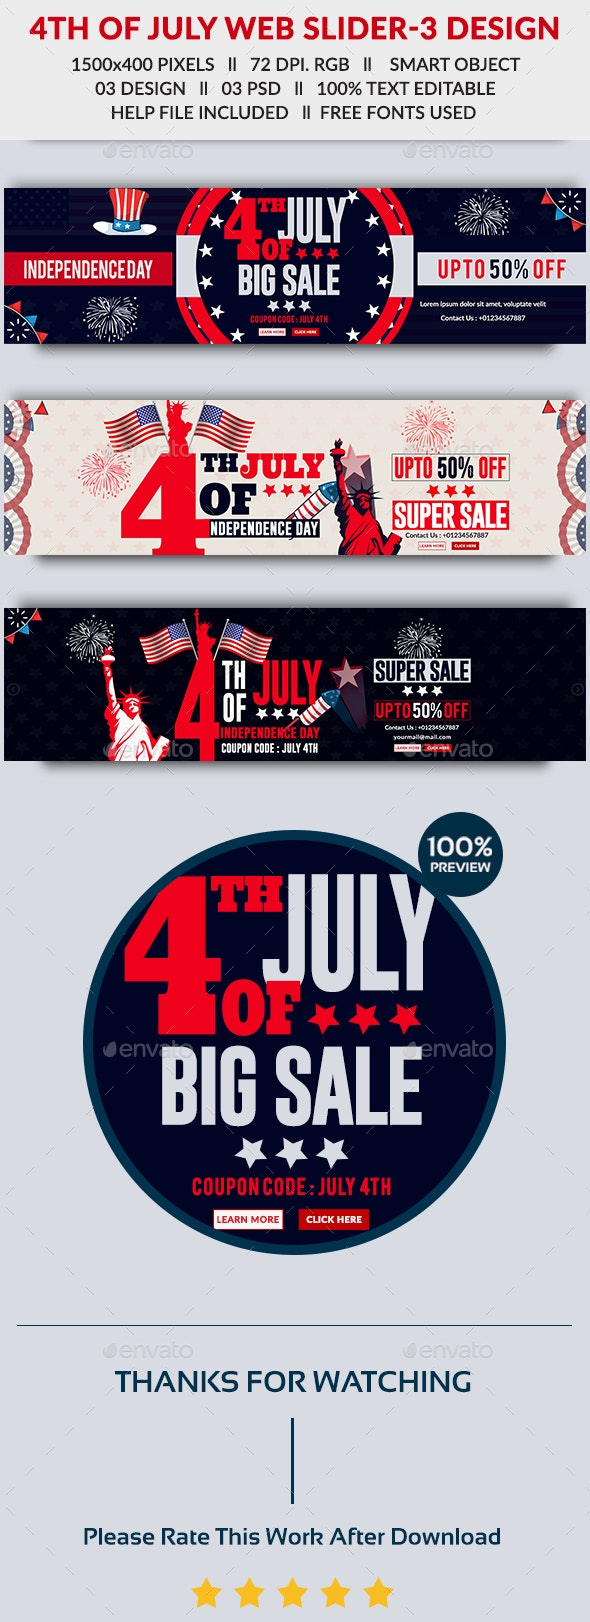 4th of July Web Slider - 3 Design- Image Included - Sliders & Features Web Elements